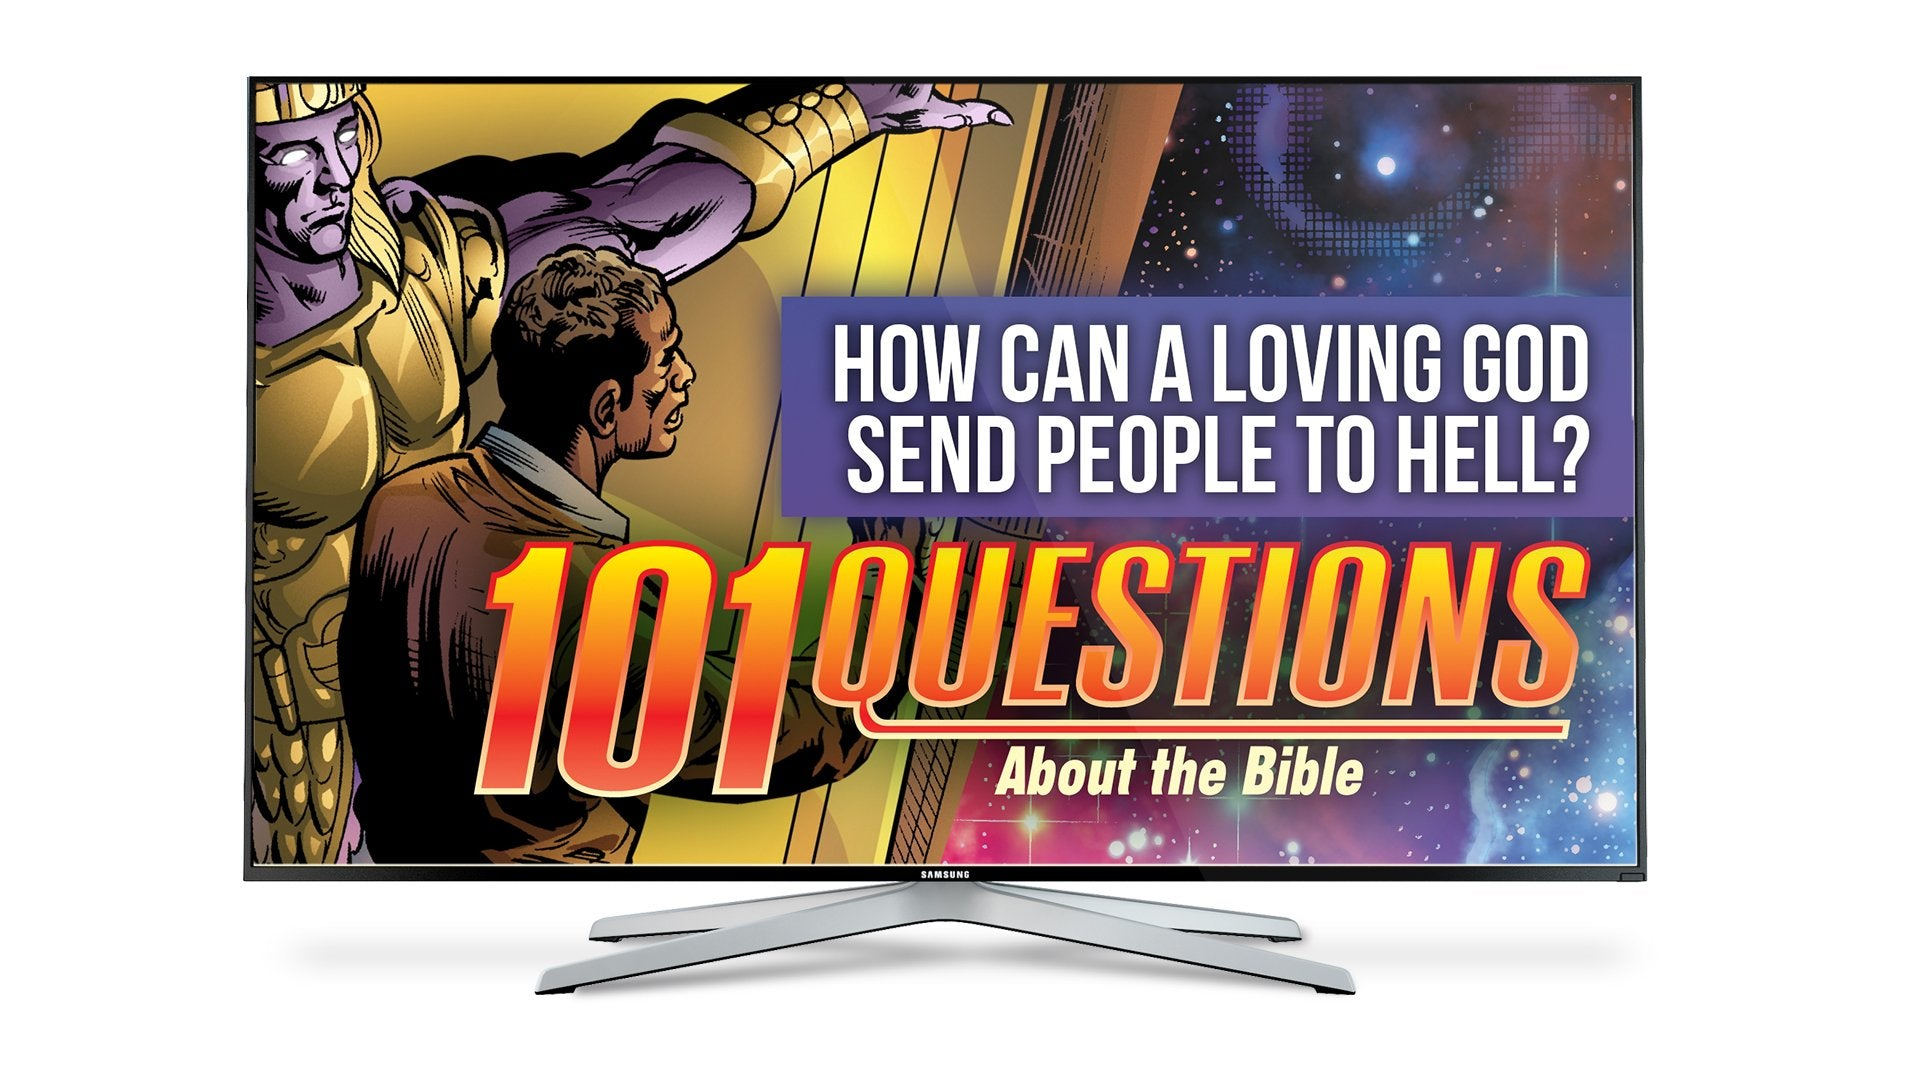 101 Questions: #12 How Can a Loving God Send People to Hell?